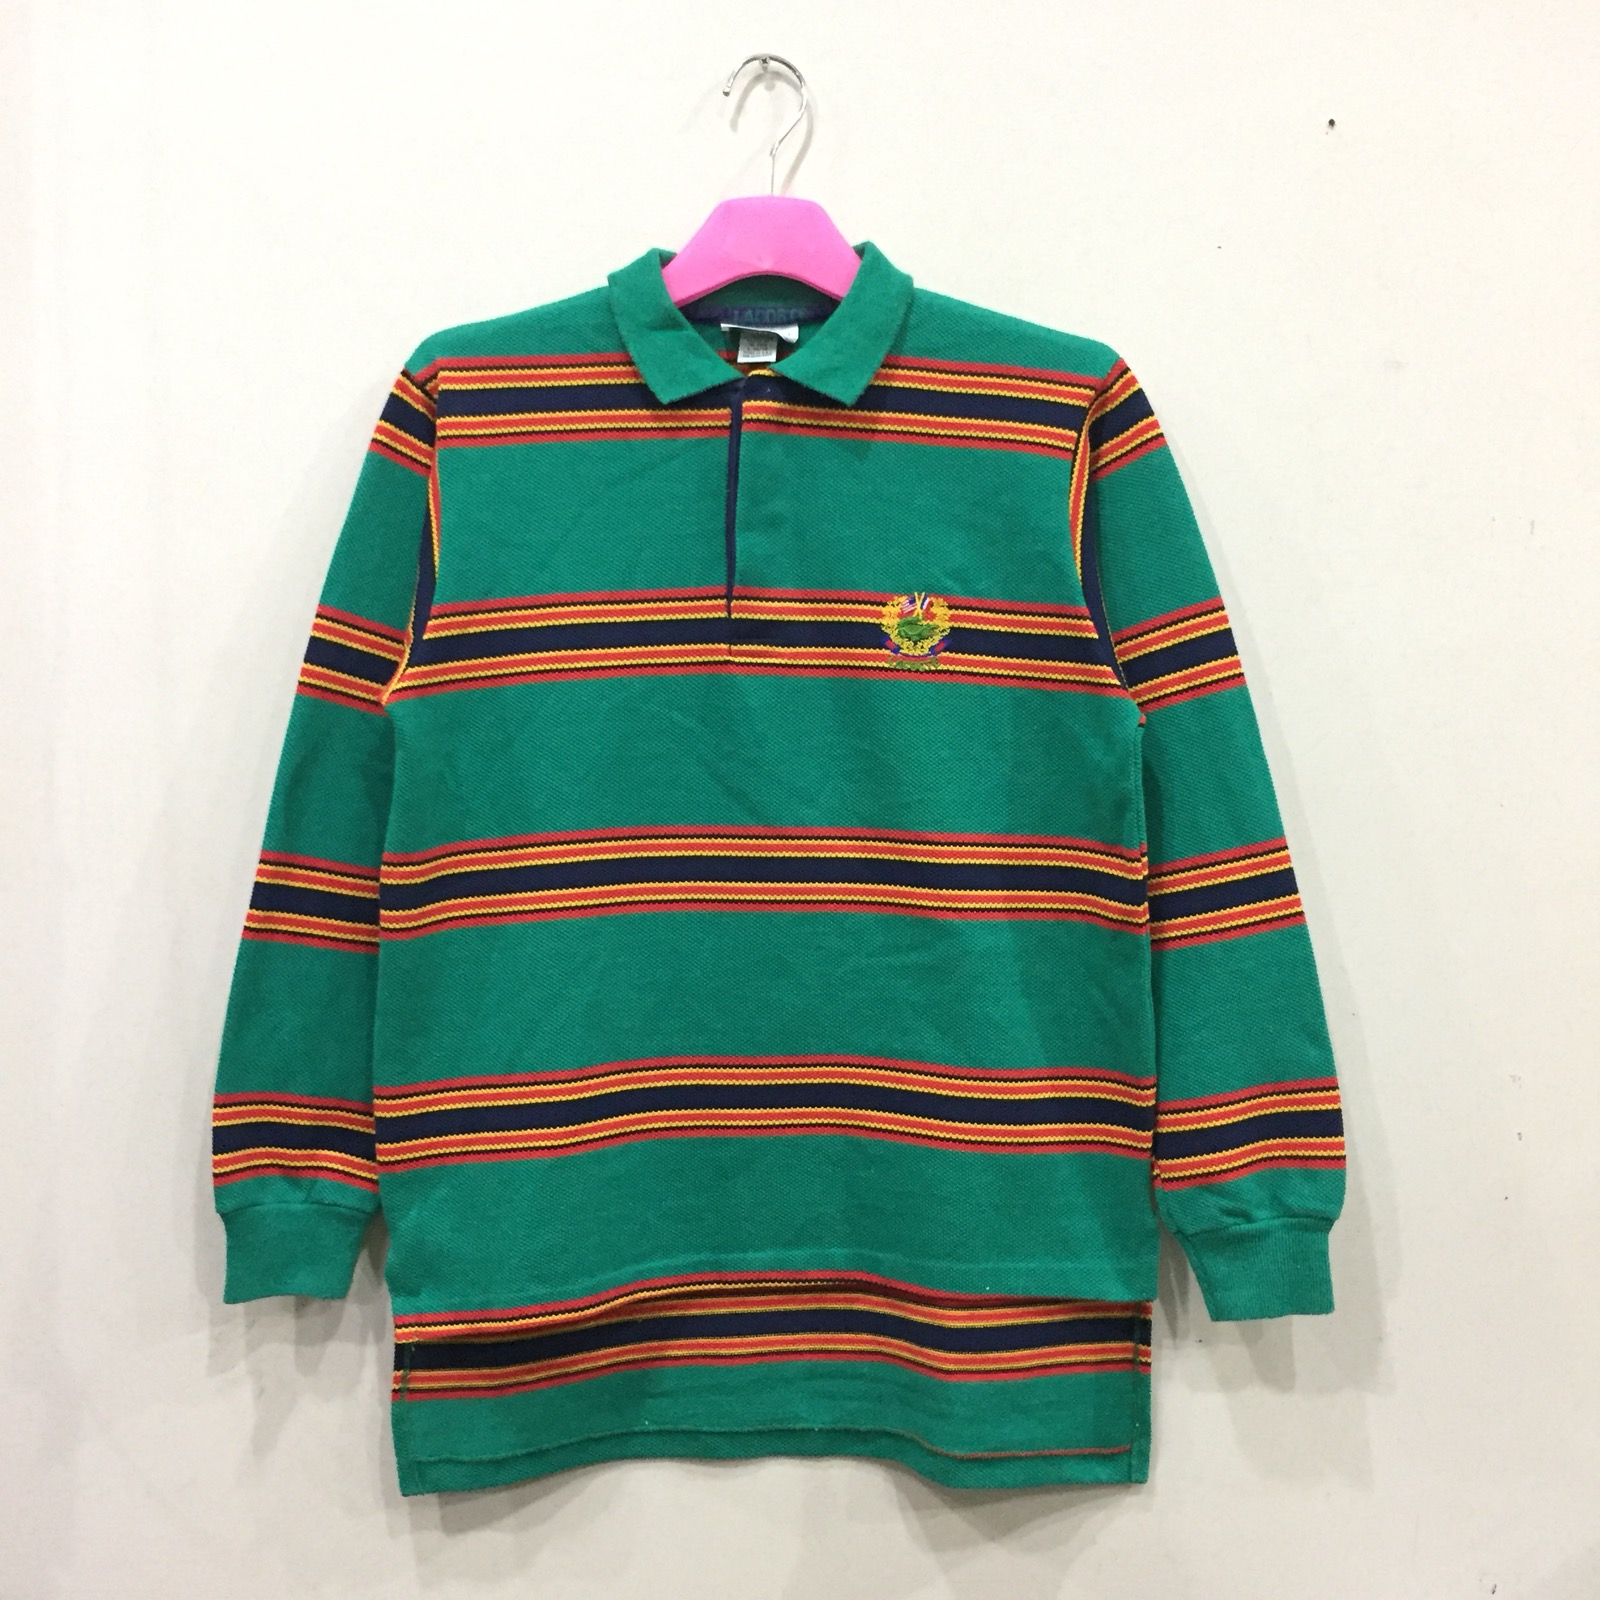 fd0d87b15 Vintage Lacoste Polo Shirt Long Sleeve Spell Out Embroidered Small Logo..  Horizontal Striped.. Multicolor.. Size L On Tag.. Fit To Small And Medium  Size.